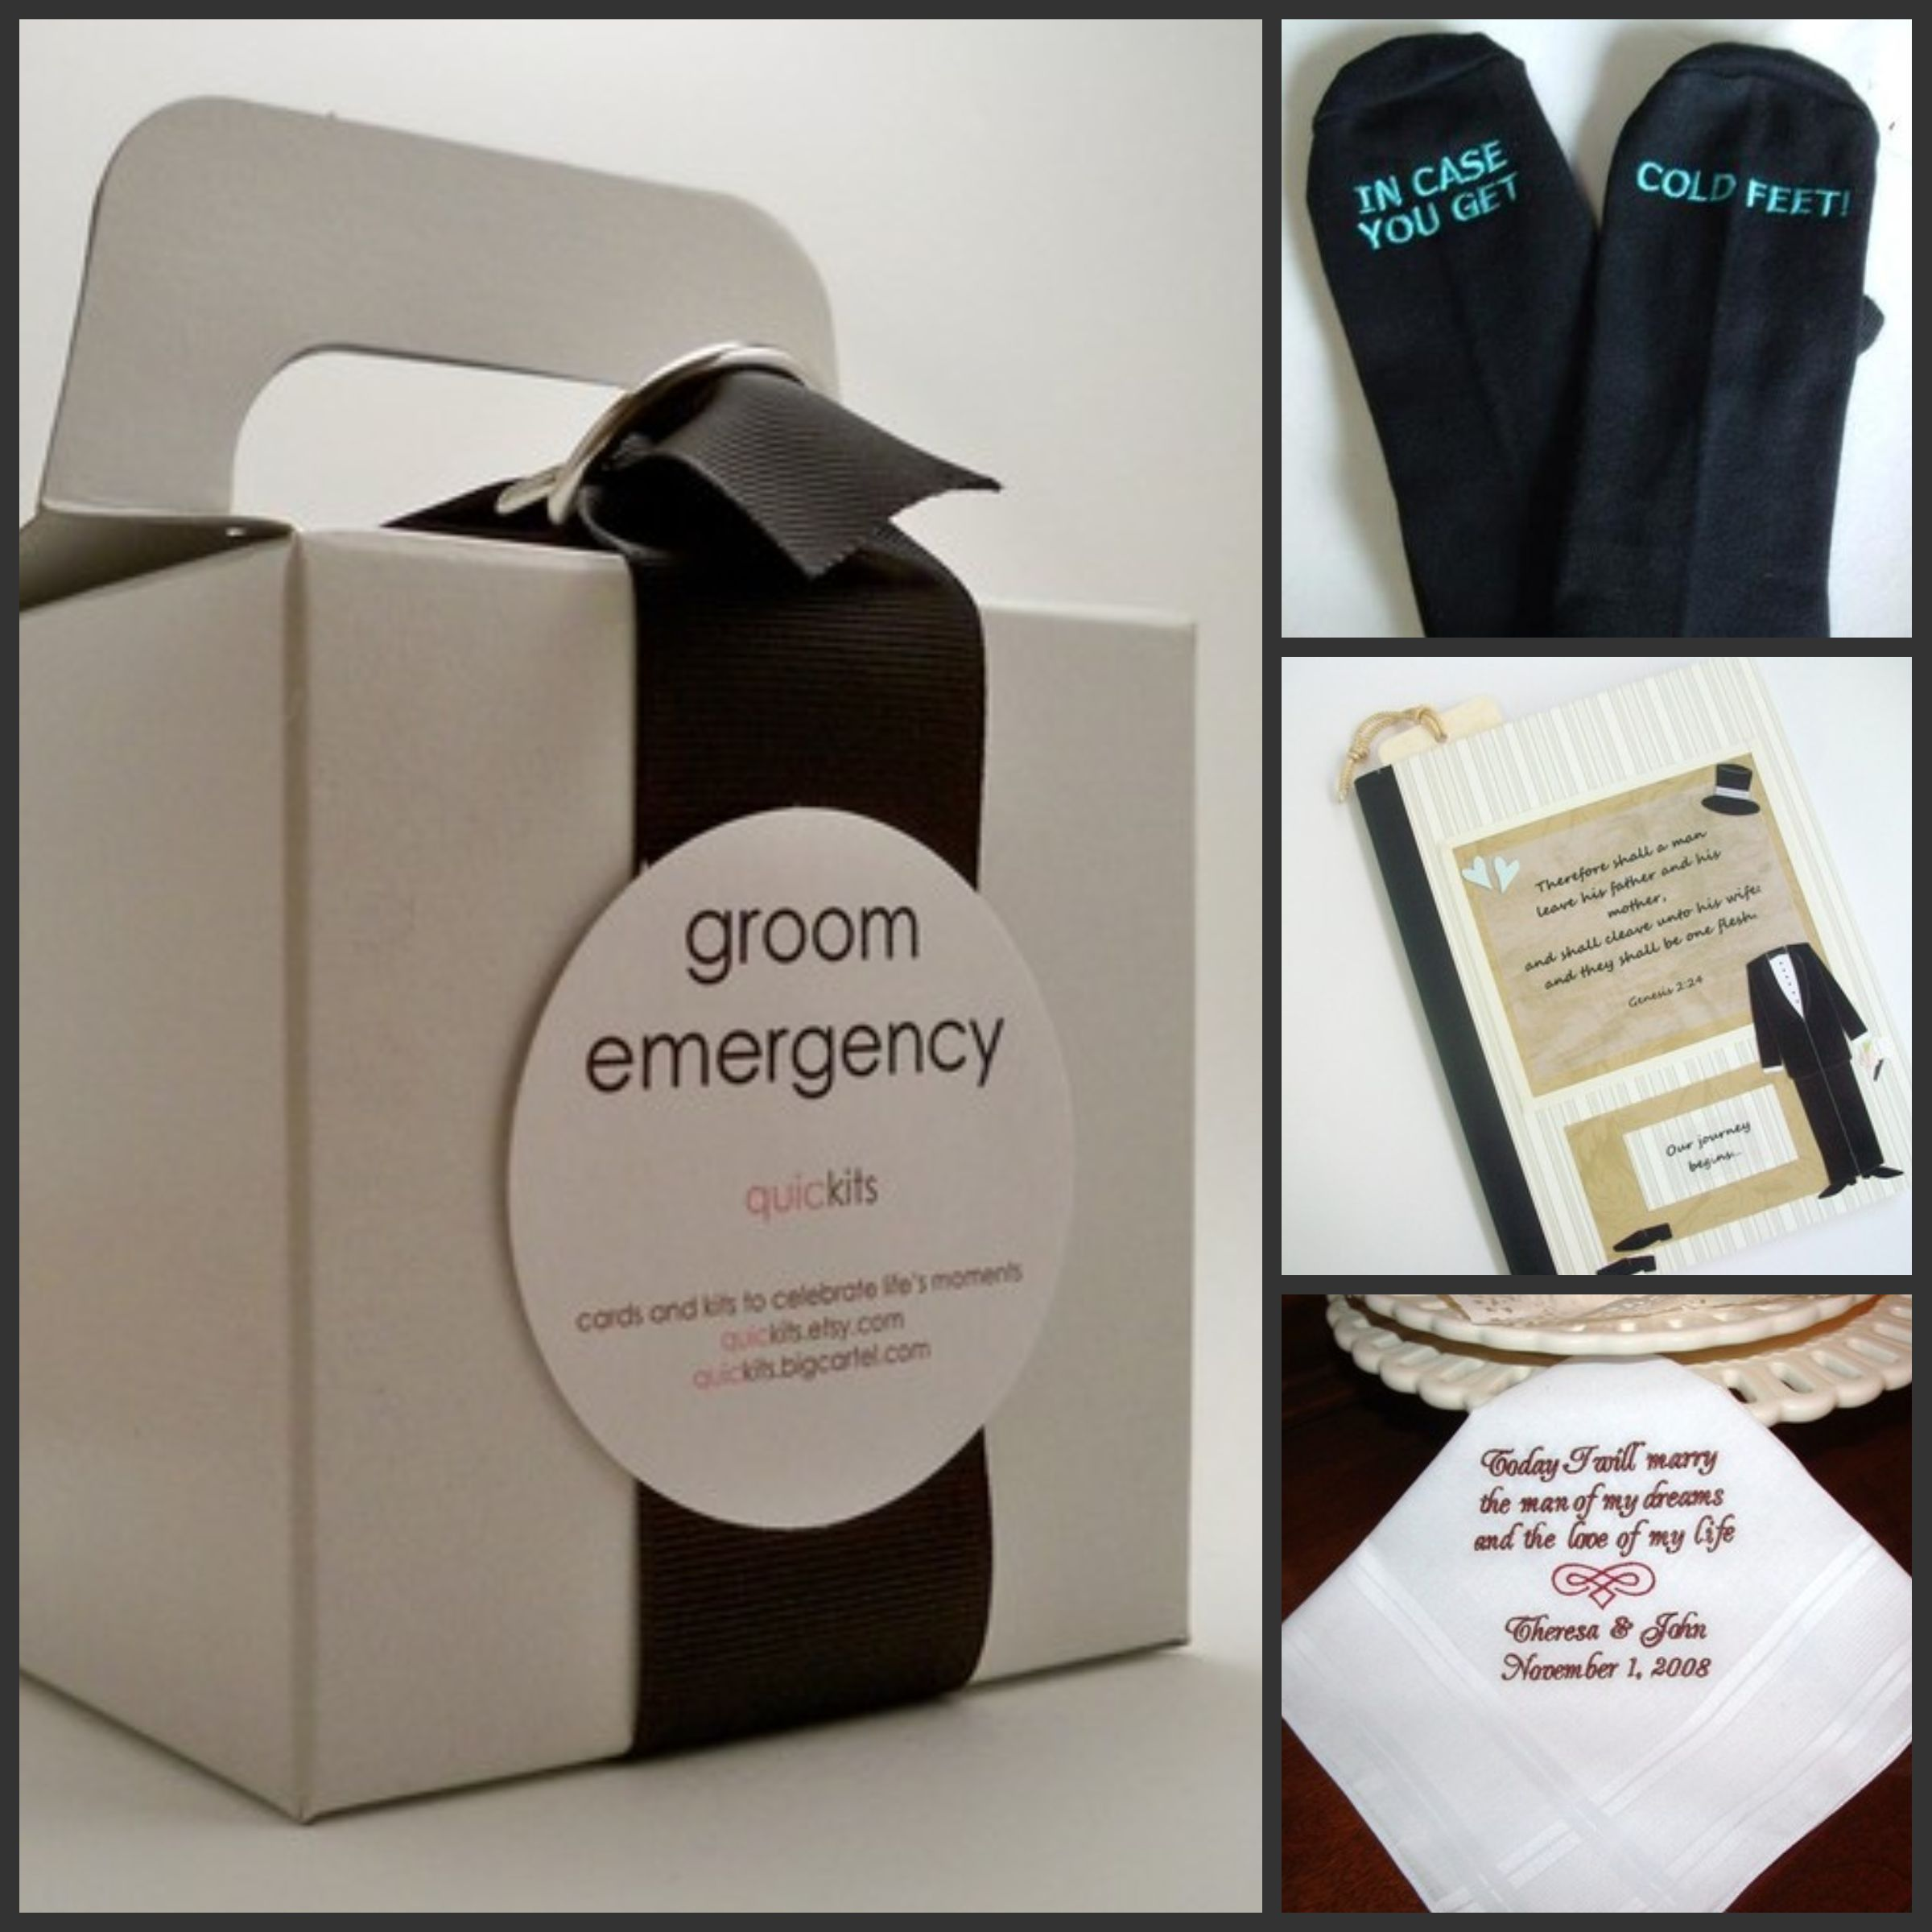 Wedding Party Gifts For Groom : groom gift from bride wedding gifts for bride gifts for groom bridal ...